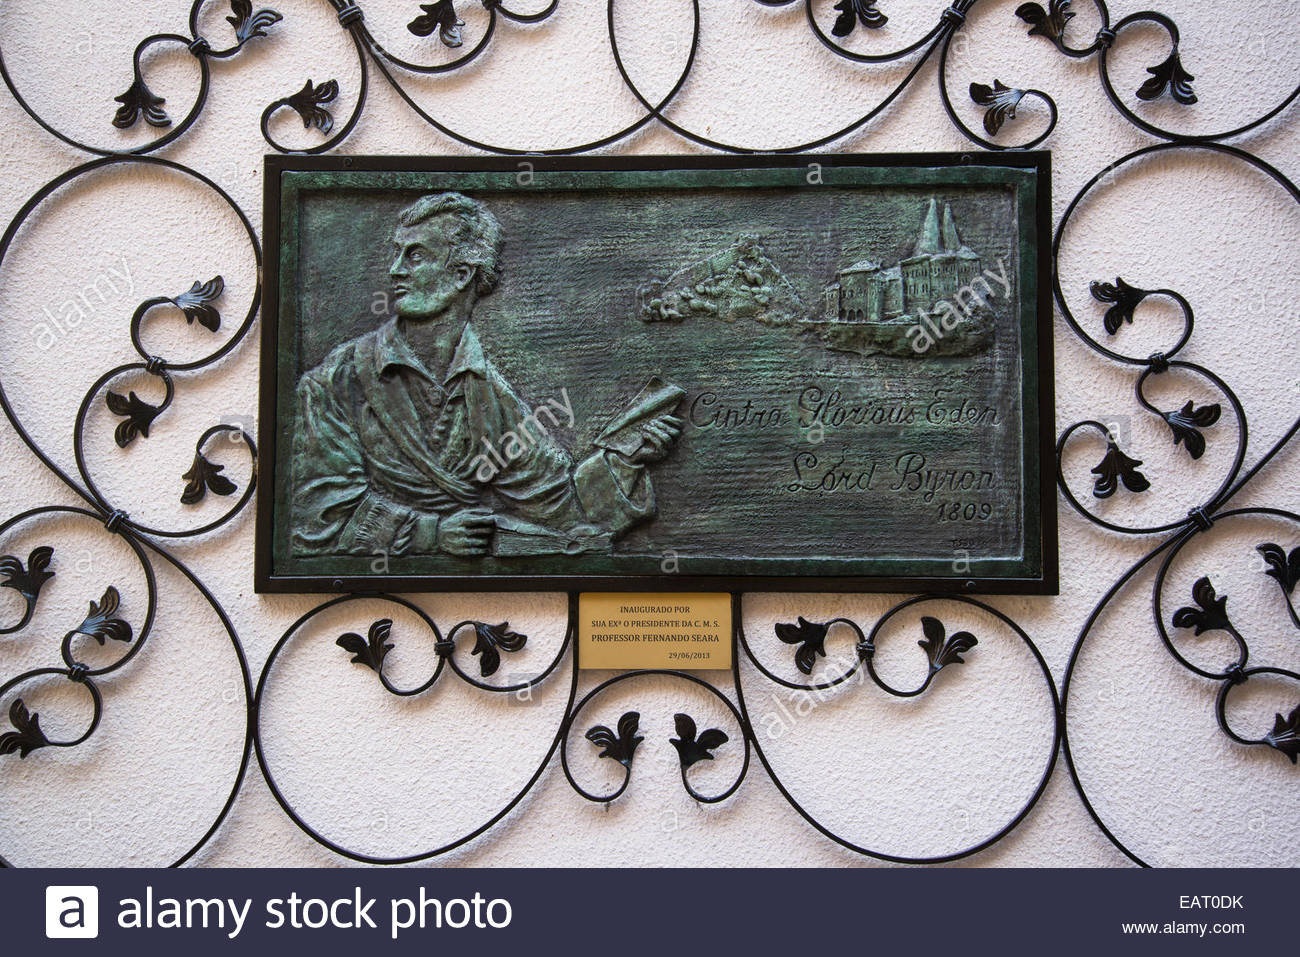 Lord Byron plaque 'Sintra Glorious Eden', Sintra, Portugal - Stock Image